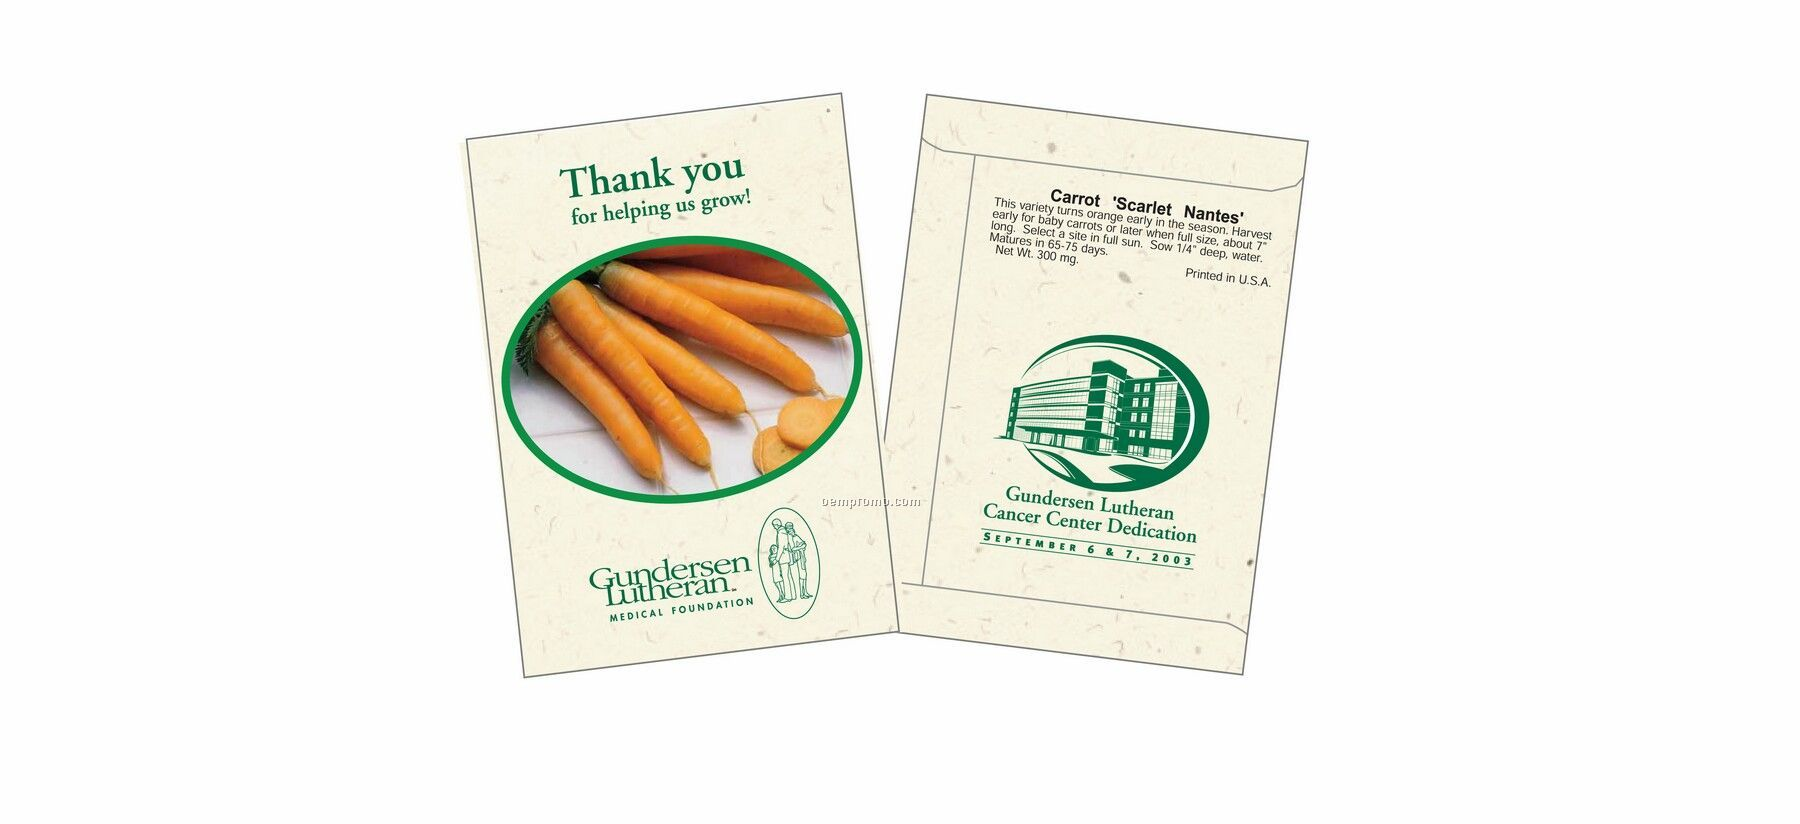 3026 Carrot Packet 1 Color Imprint